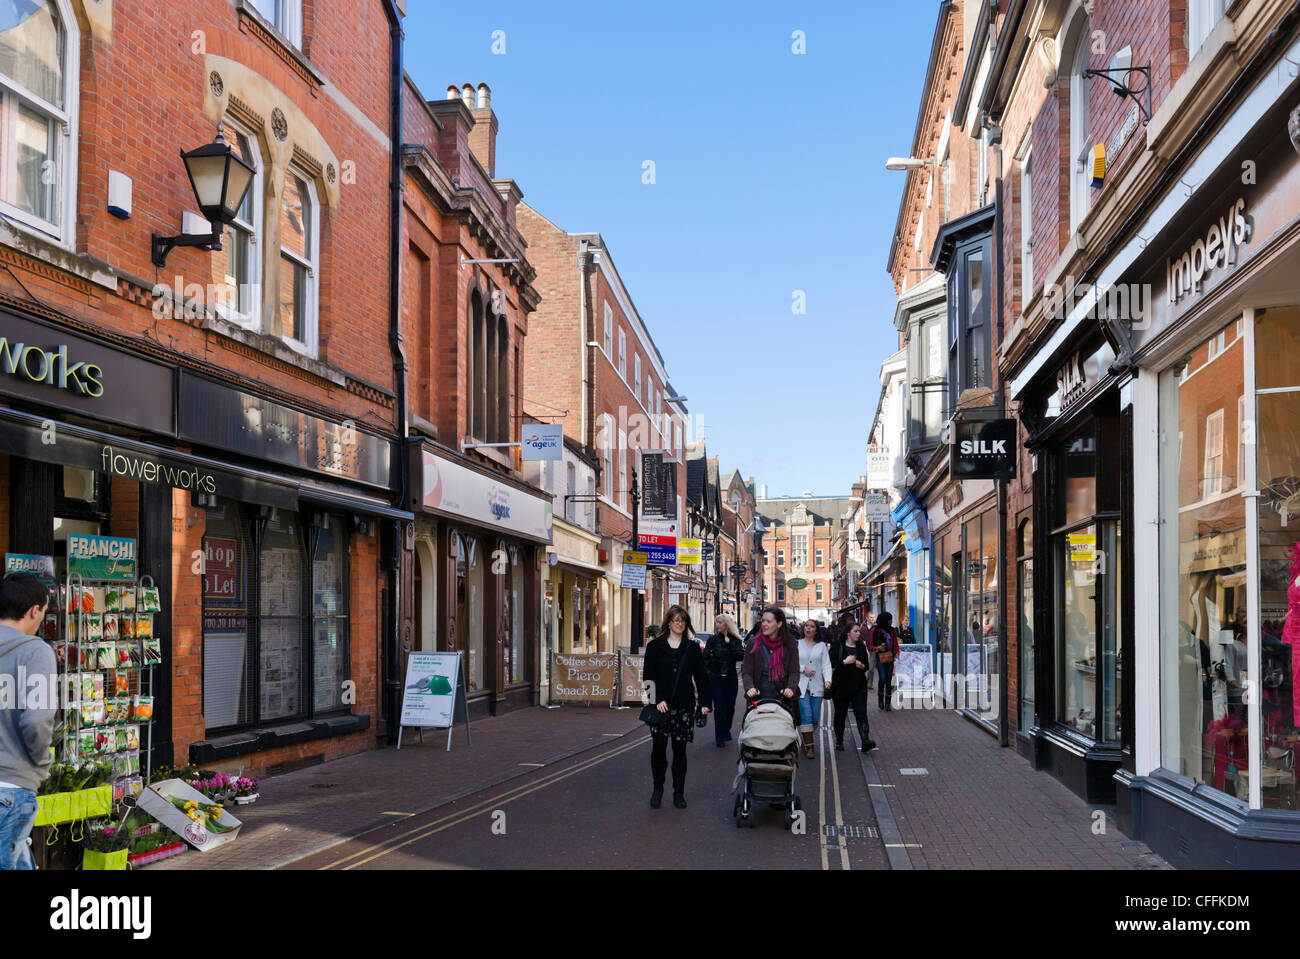 Shops on Loseby Lane in the city centre, Leicester, Leicestershire, England, UK Stock Photo